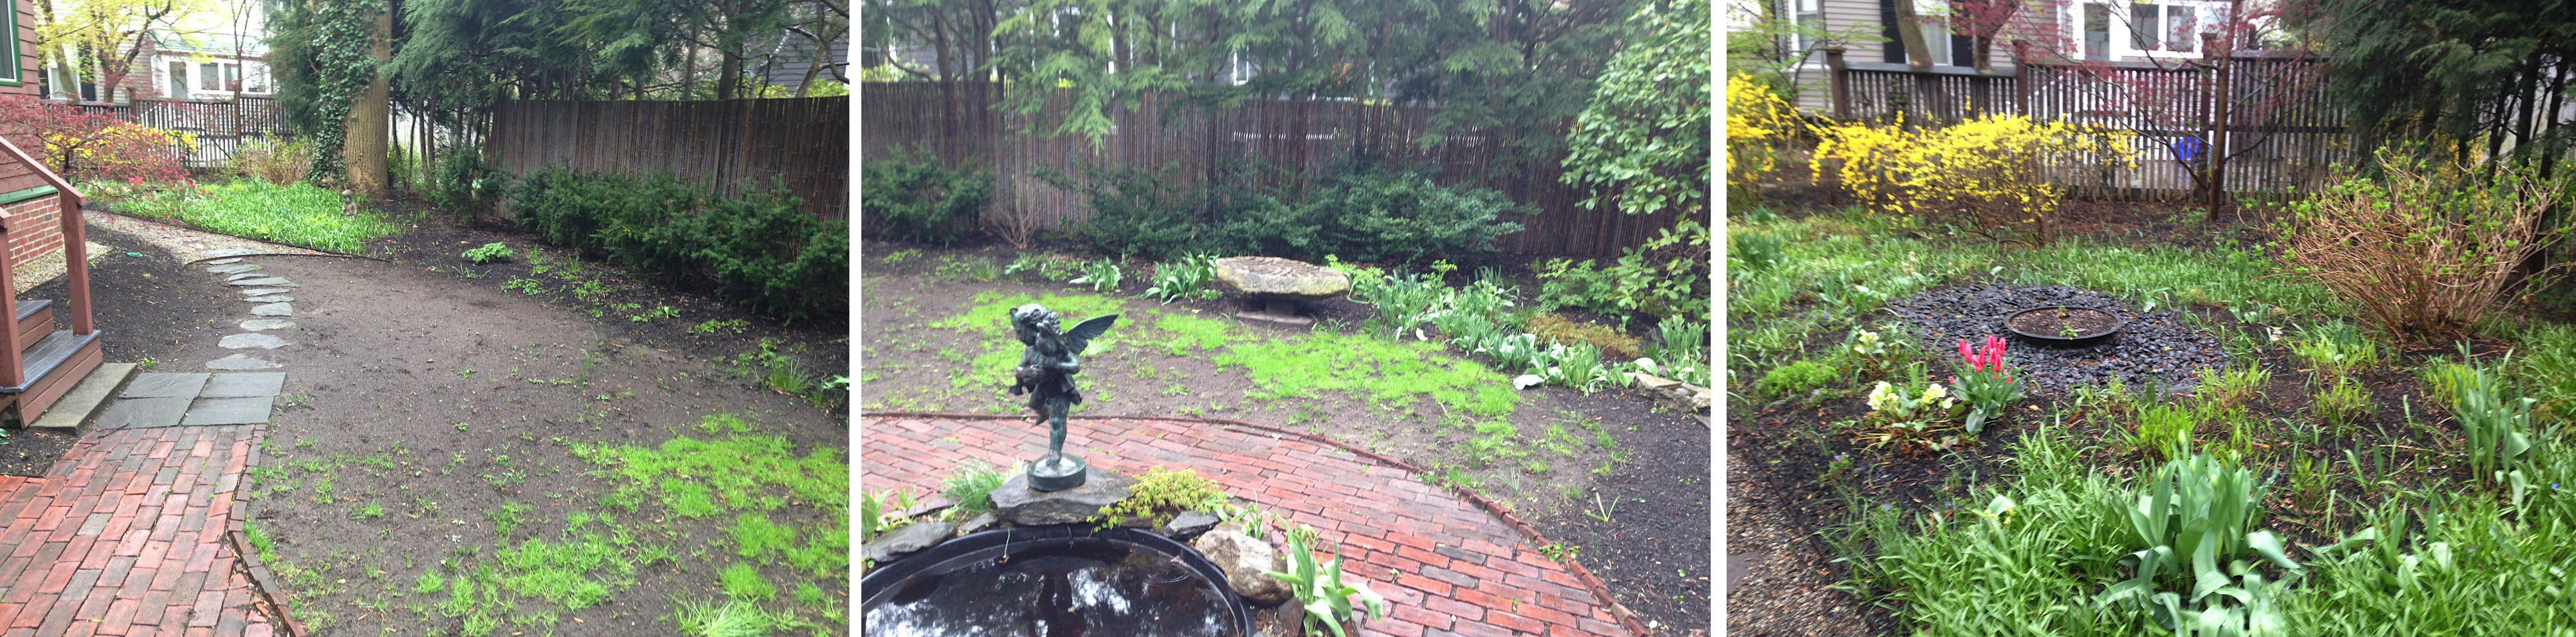 Before images of Cambridge back yard